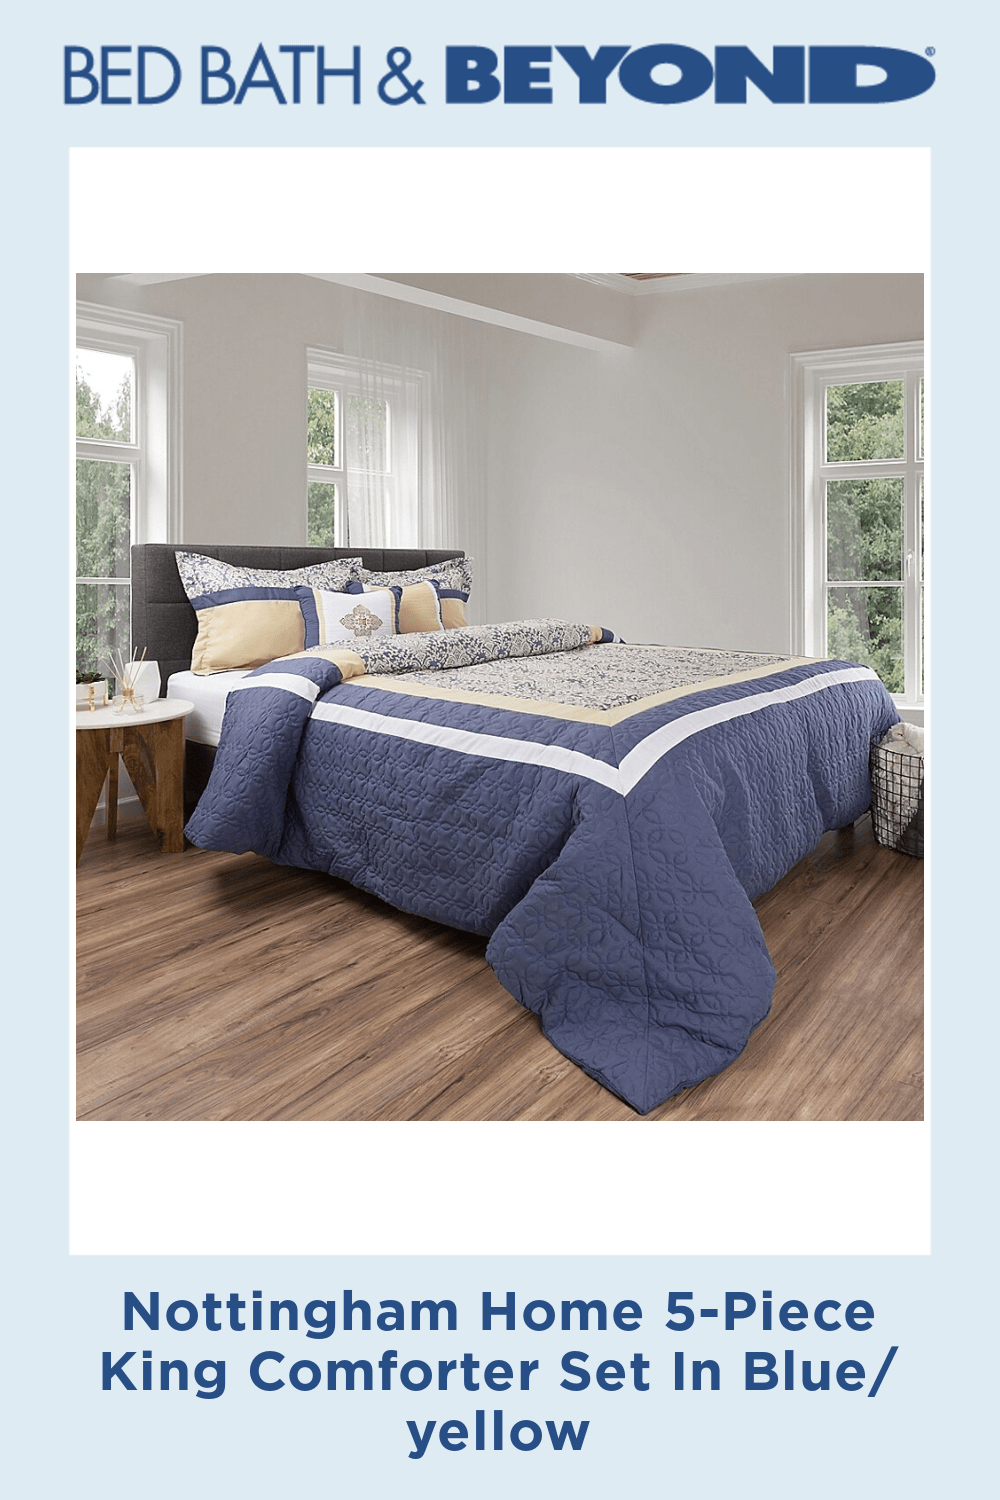 Photo of Nottingham Home 5-Piece King Comforter Set In Blue/yellow